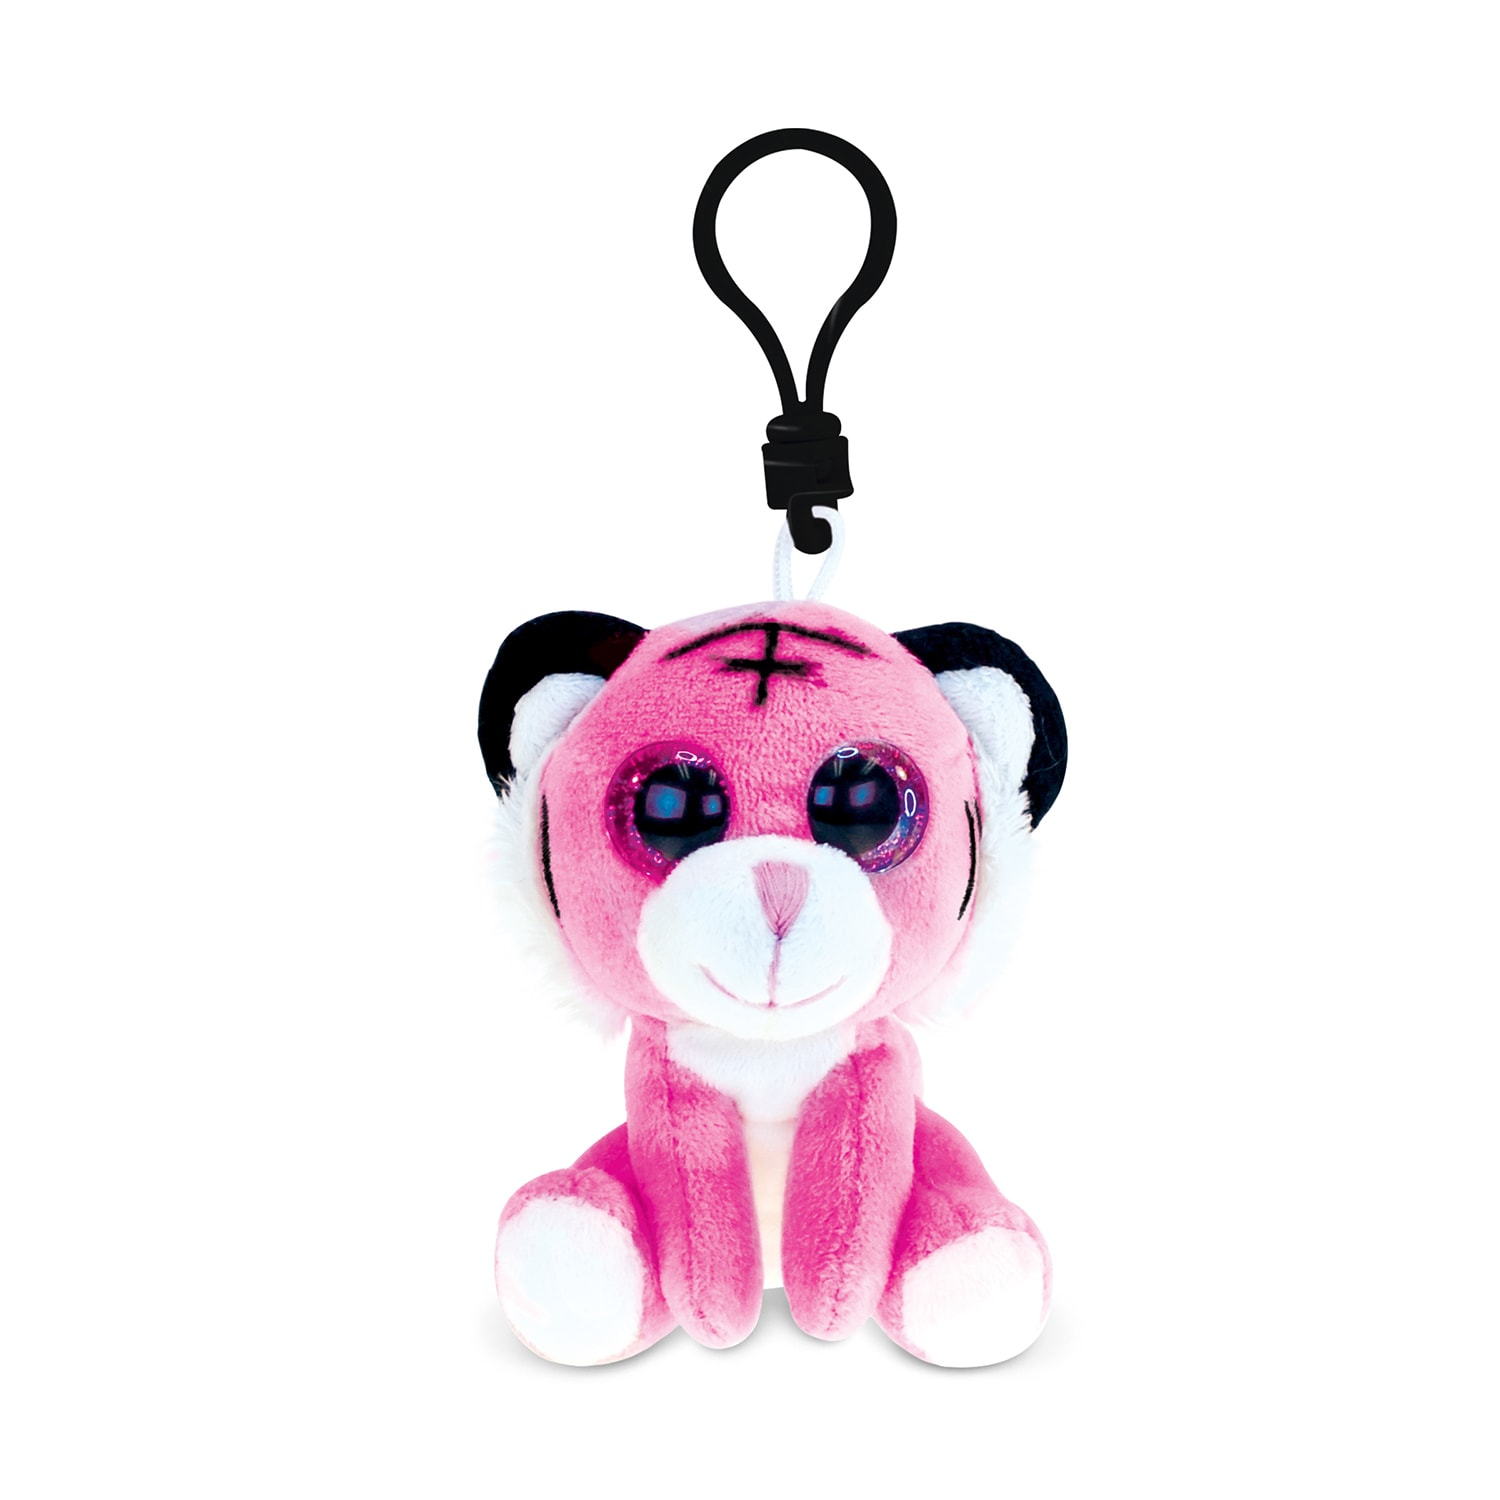 Shop Puzzled Inc Pink Tiger Polyester 6 Inch Soft Stuffed Plush Big